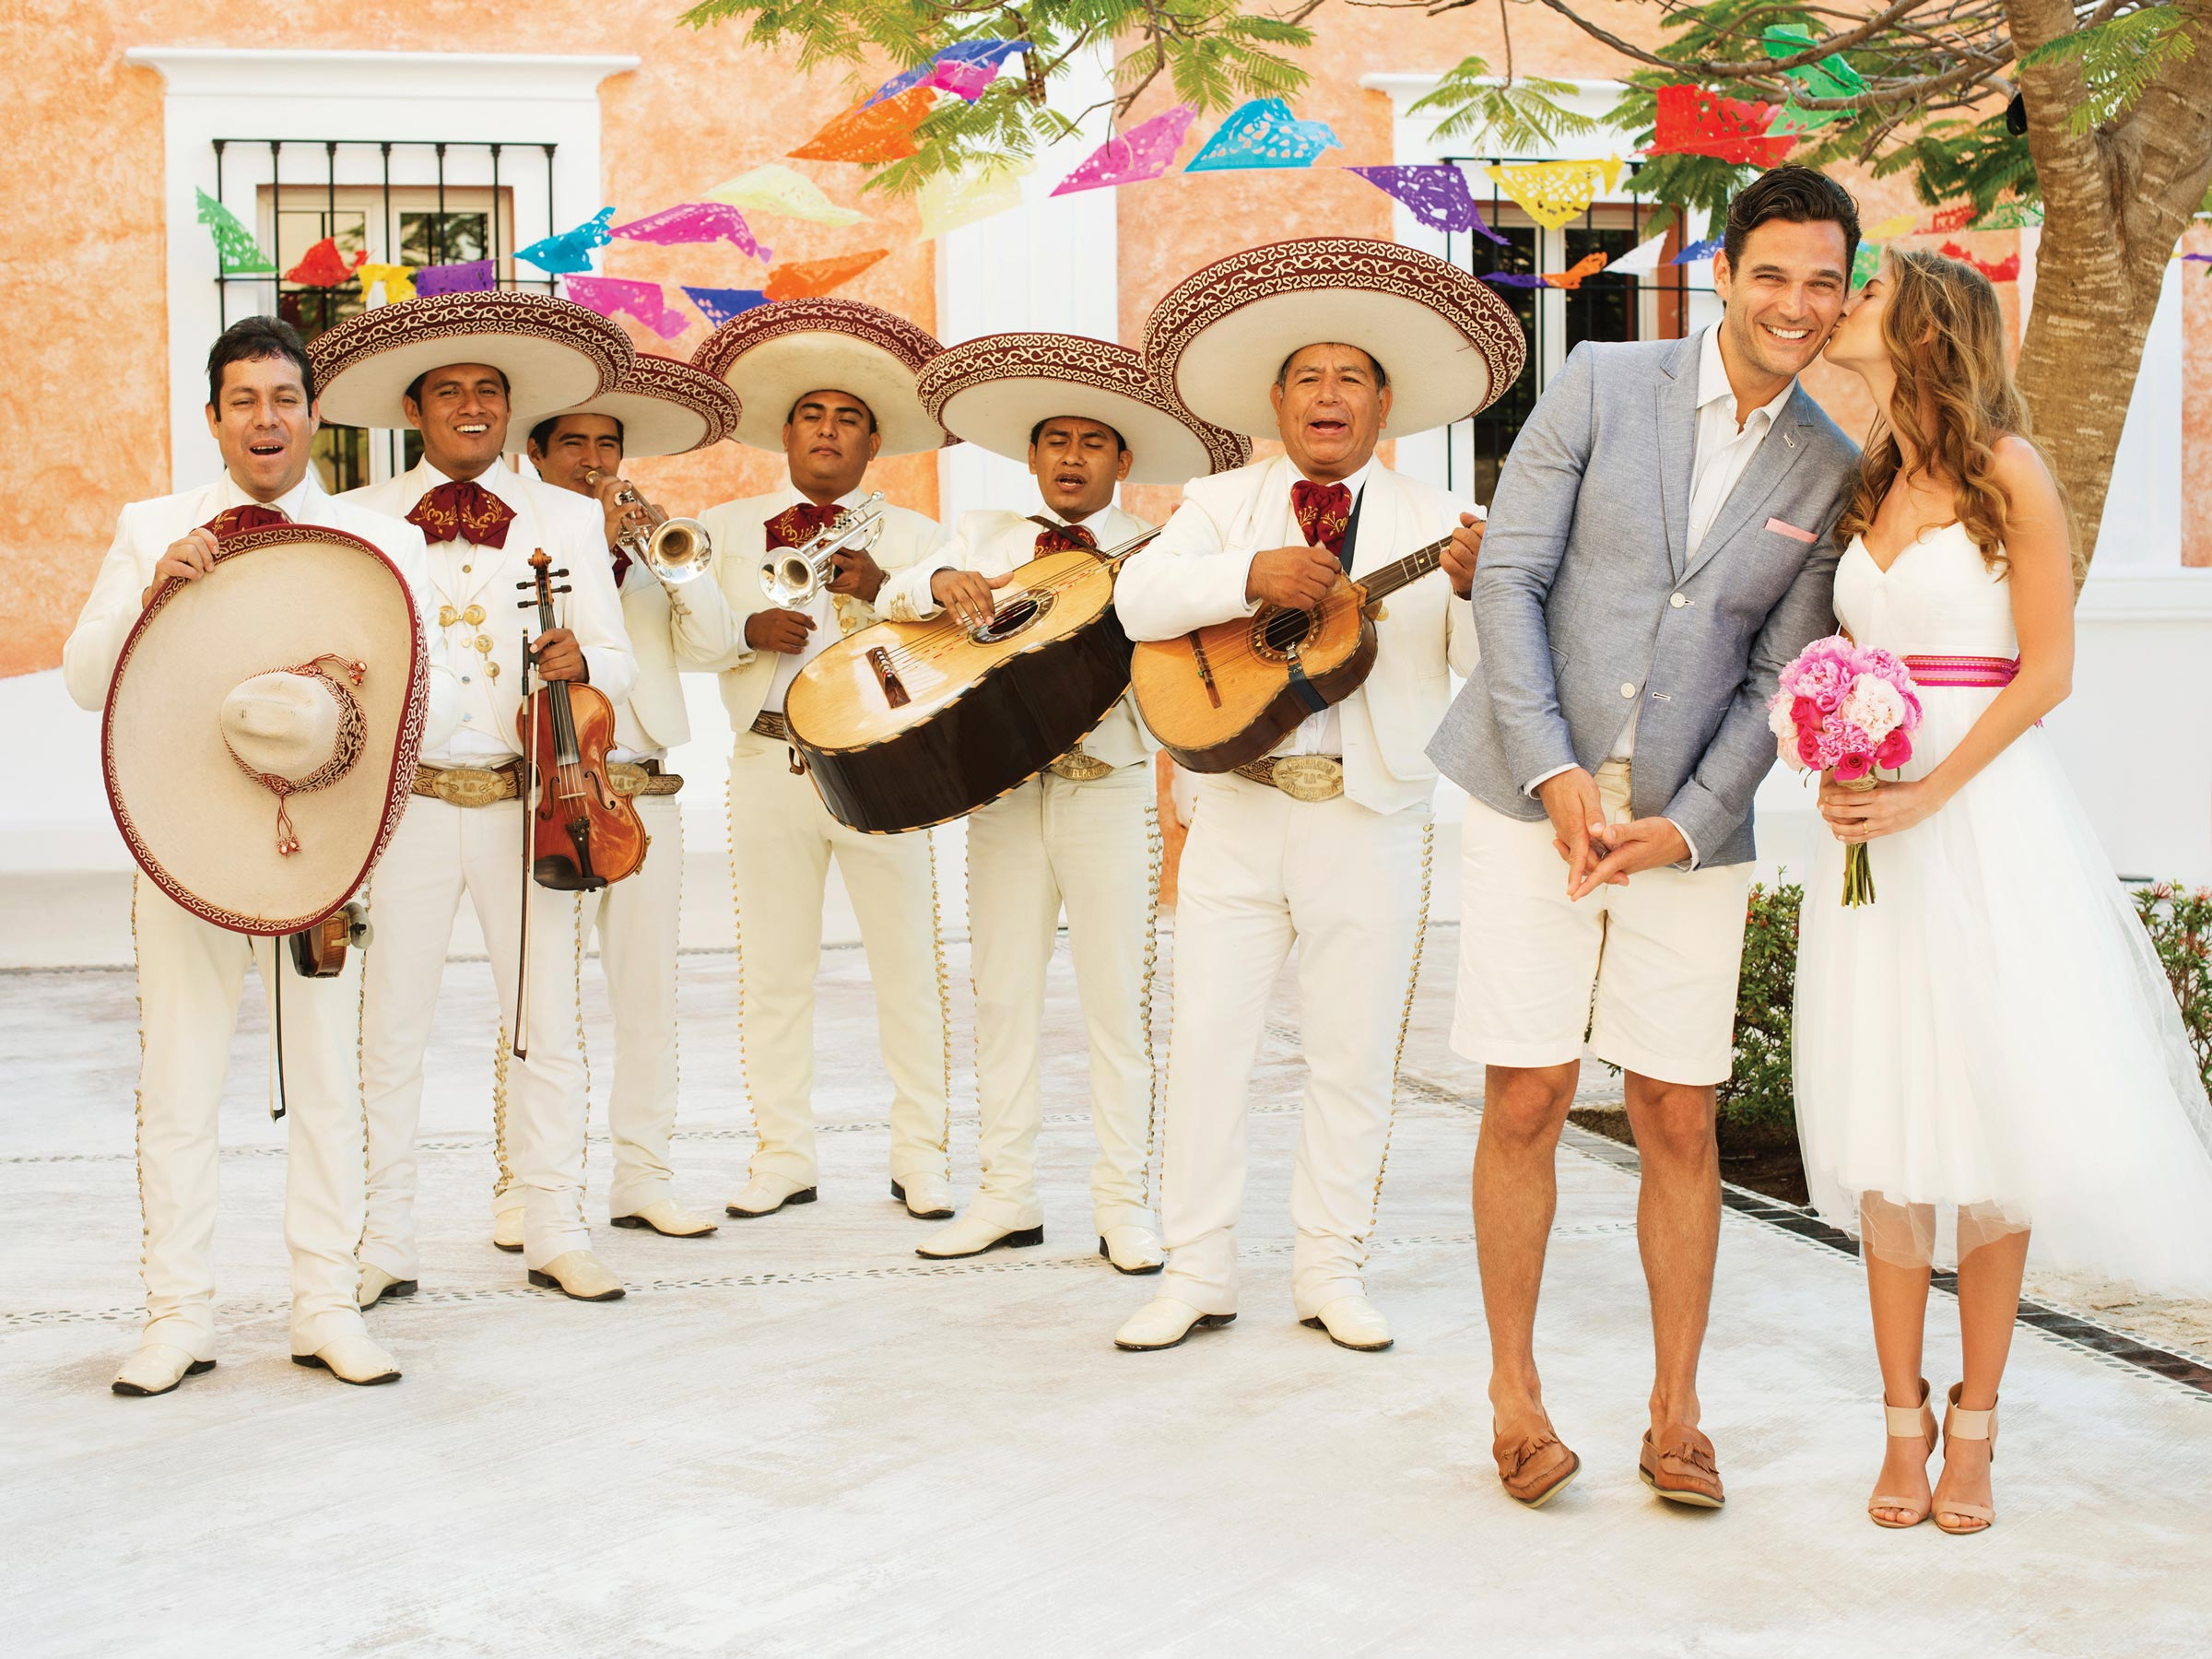 Riviera Maya Destination Wedding with a Mariachi Band